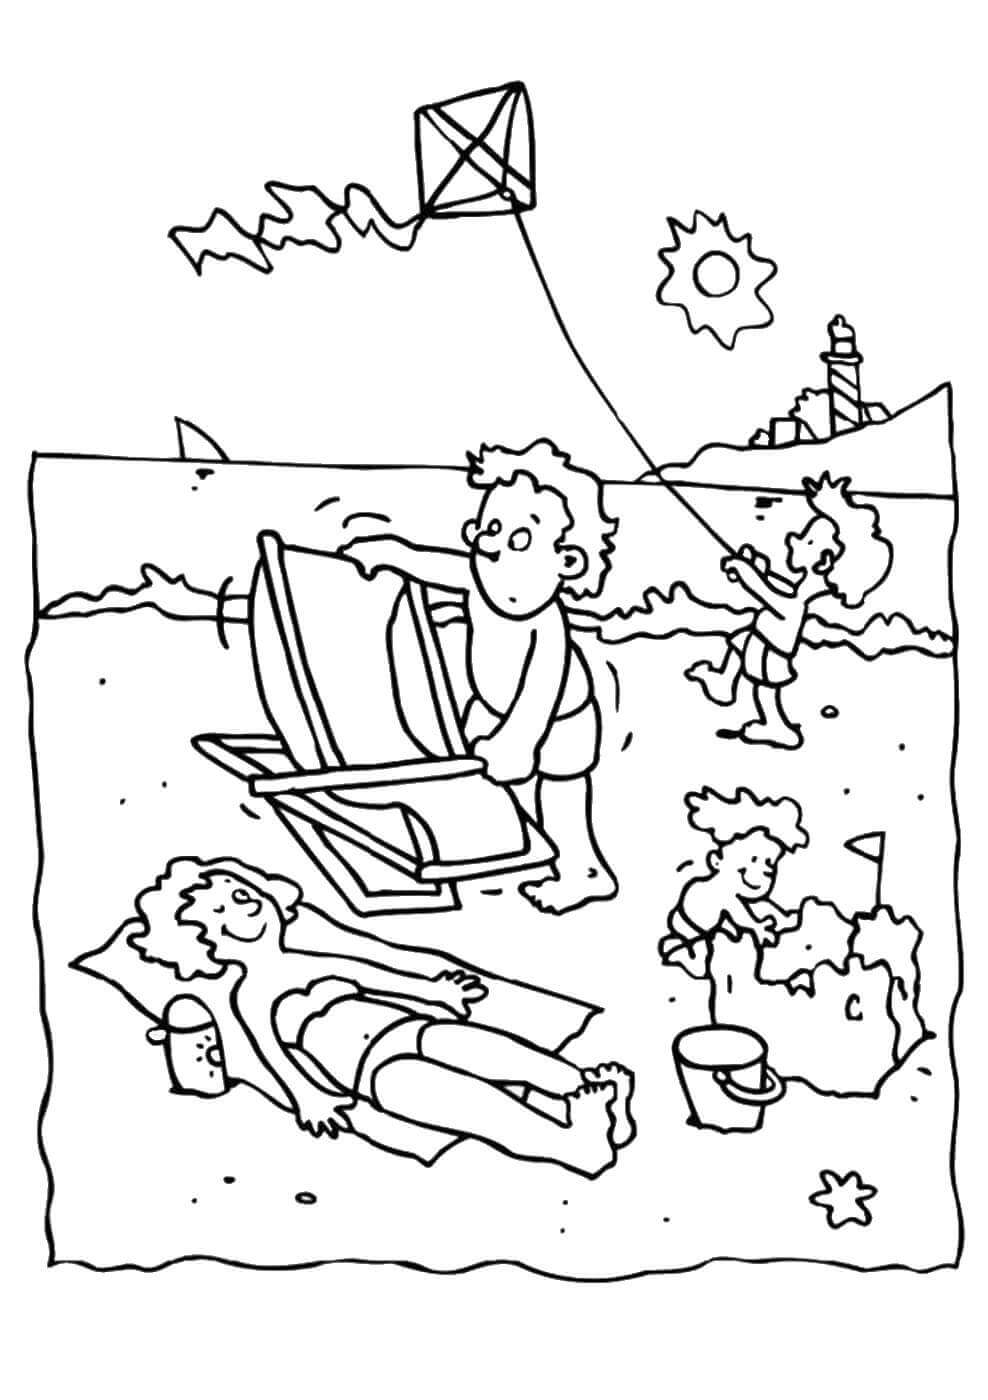 beach coloring pages printable free printable beach coloring pages for kids printable beach pages coloring